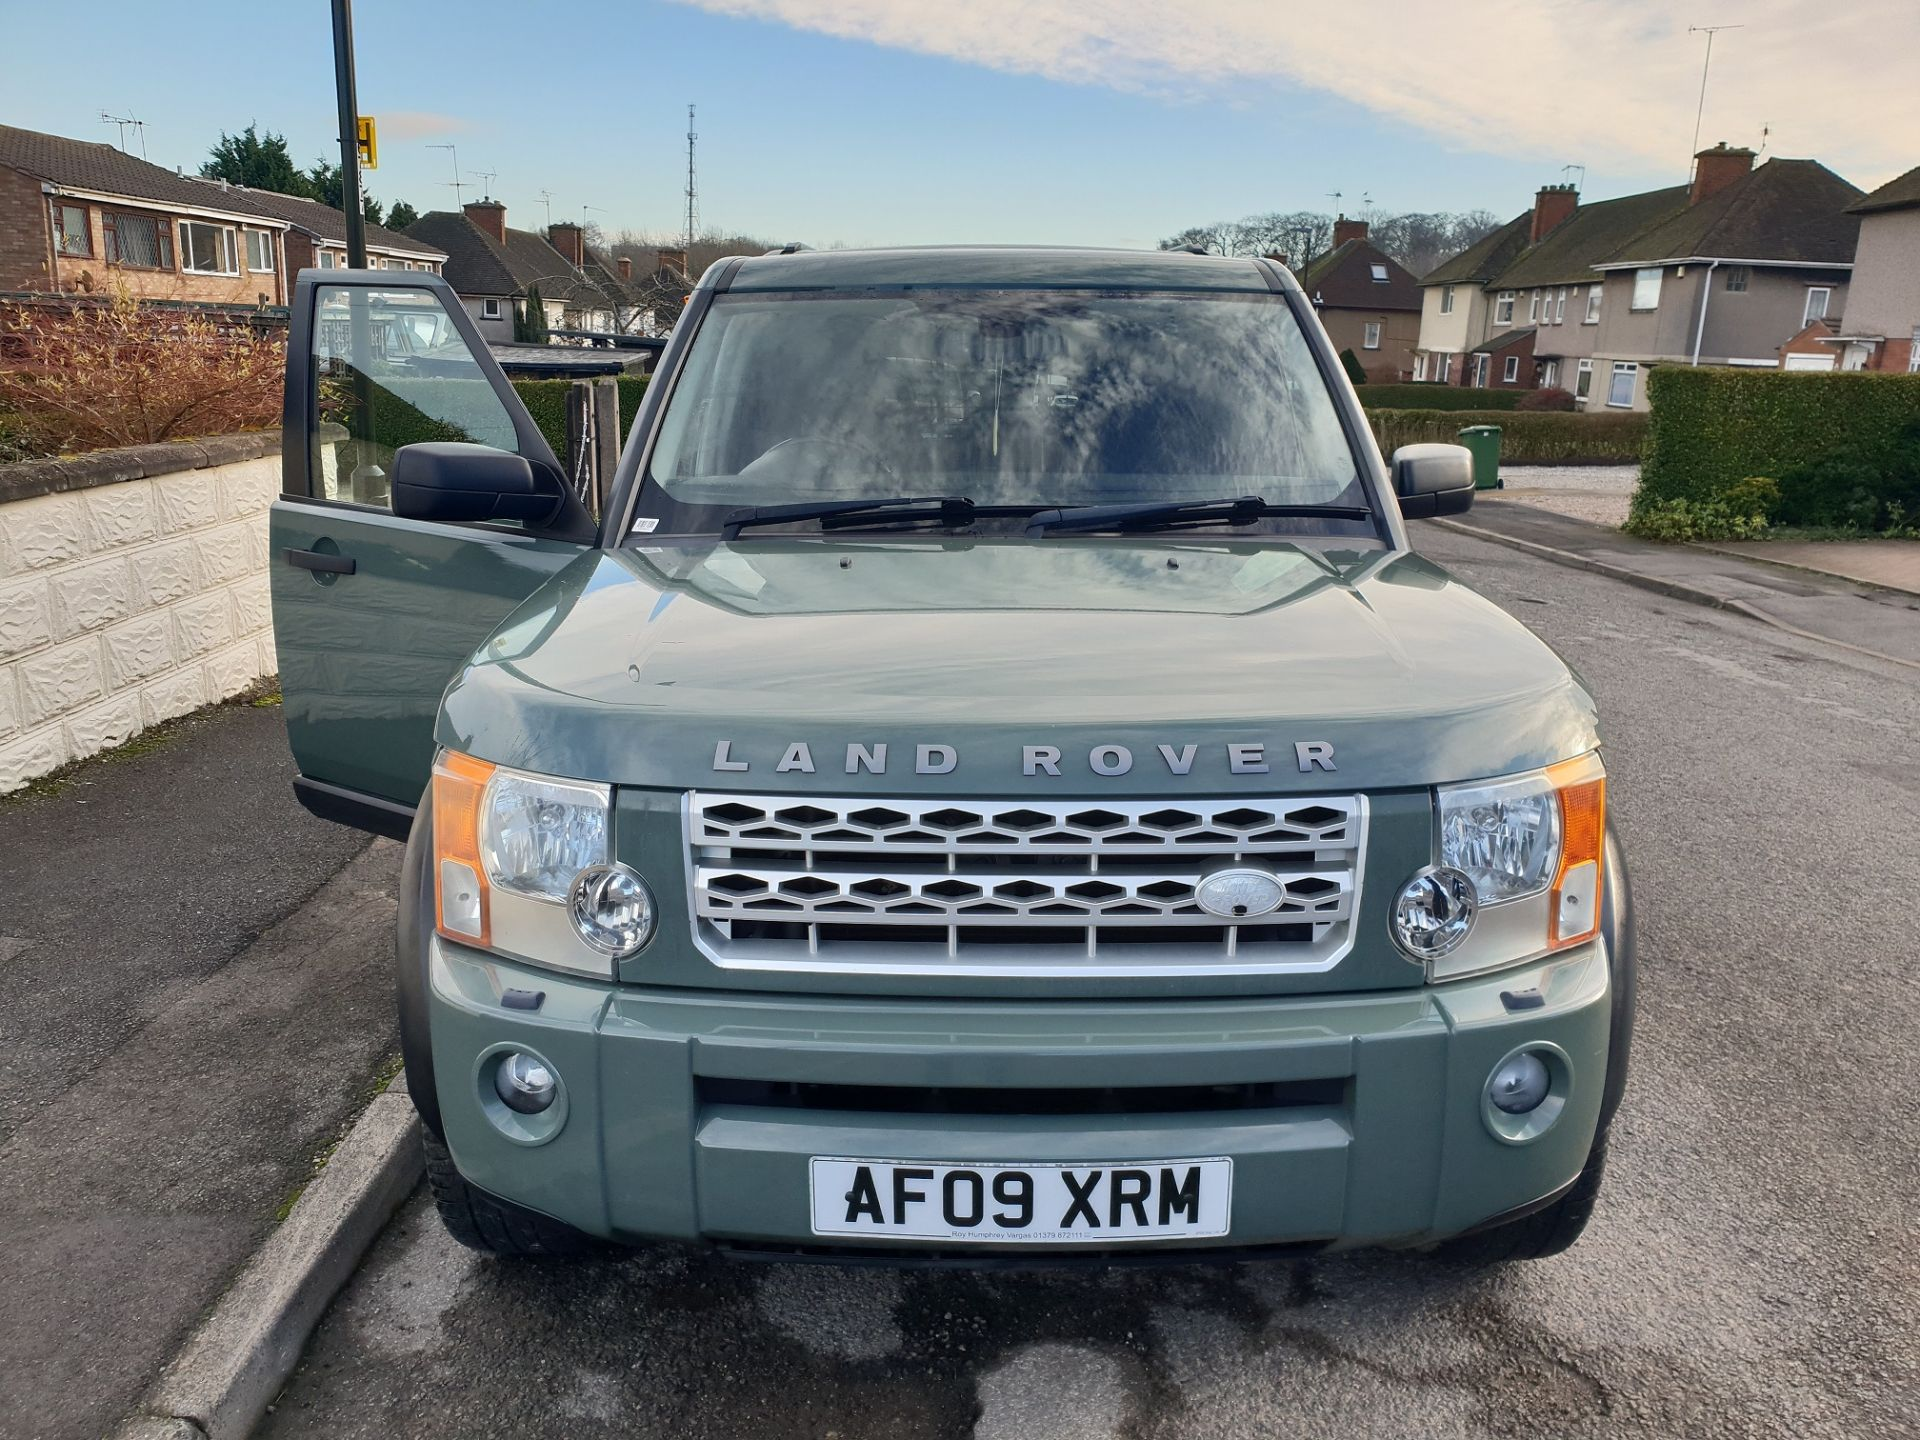 Lot 49 - 2009/09 REG LAND ROVER DISCOVERY 3 XS MWB DIESEL 4X4, ACTIVE REAR LOCKING DIFF, TOW PACK *PLUS VAT*